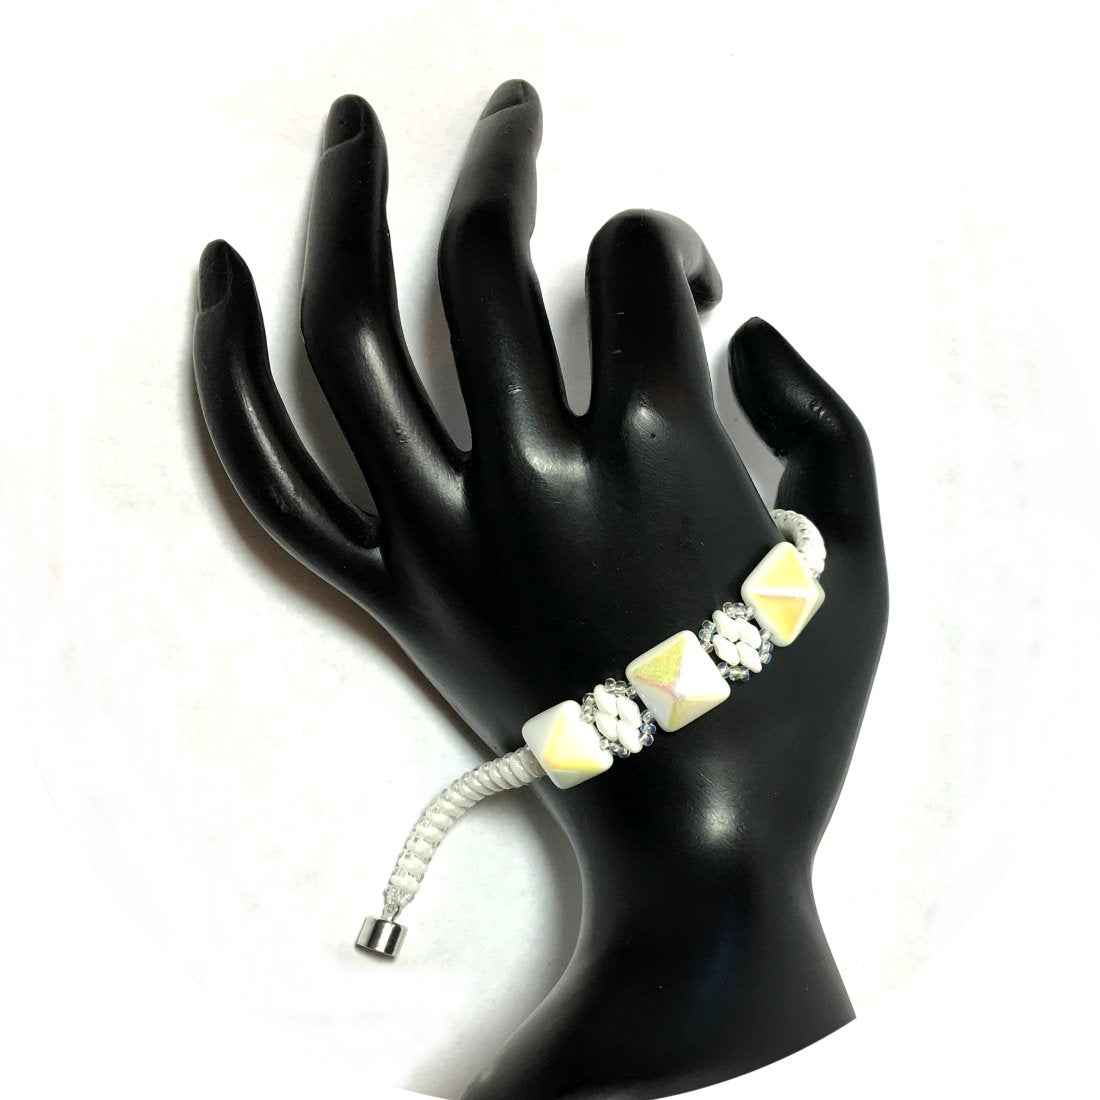 Hand Made Bracelet - Original designer Beaded Bracelets using finest glass beads. Unique Gorgeous Bracelets